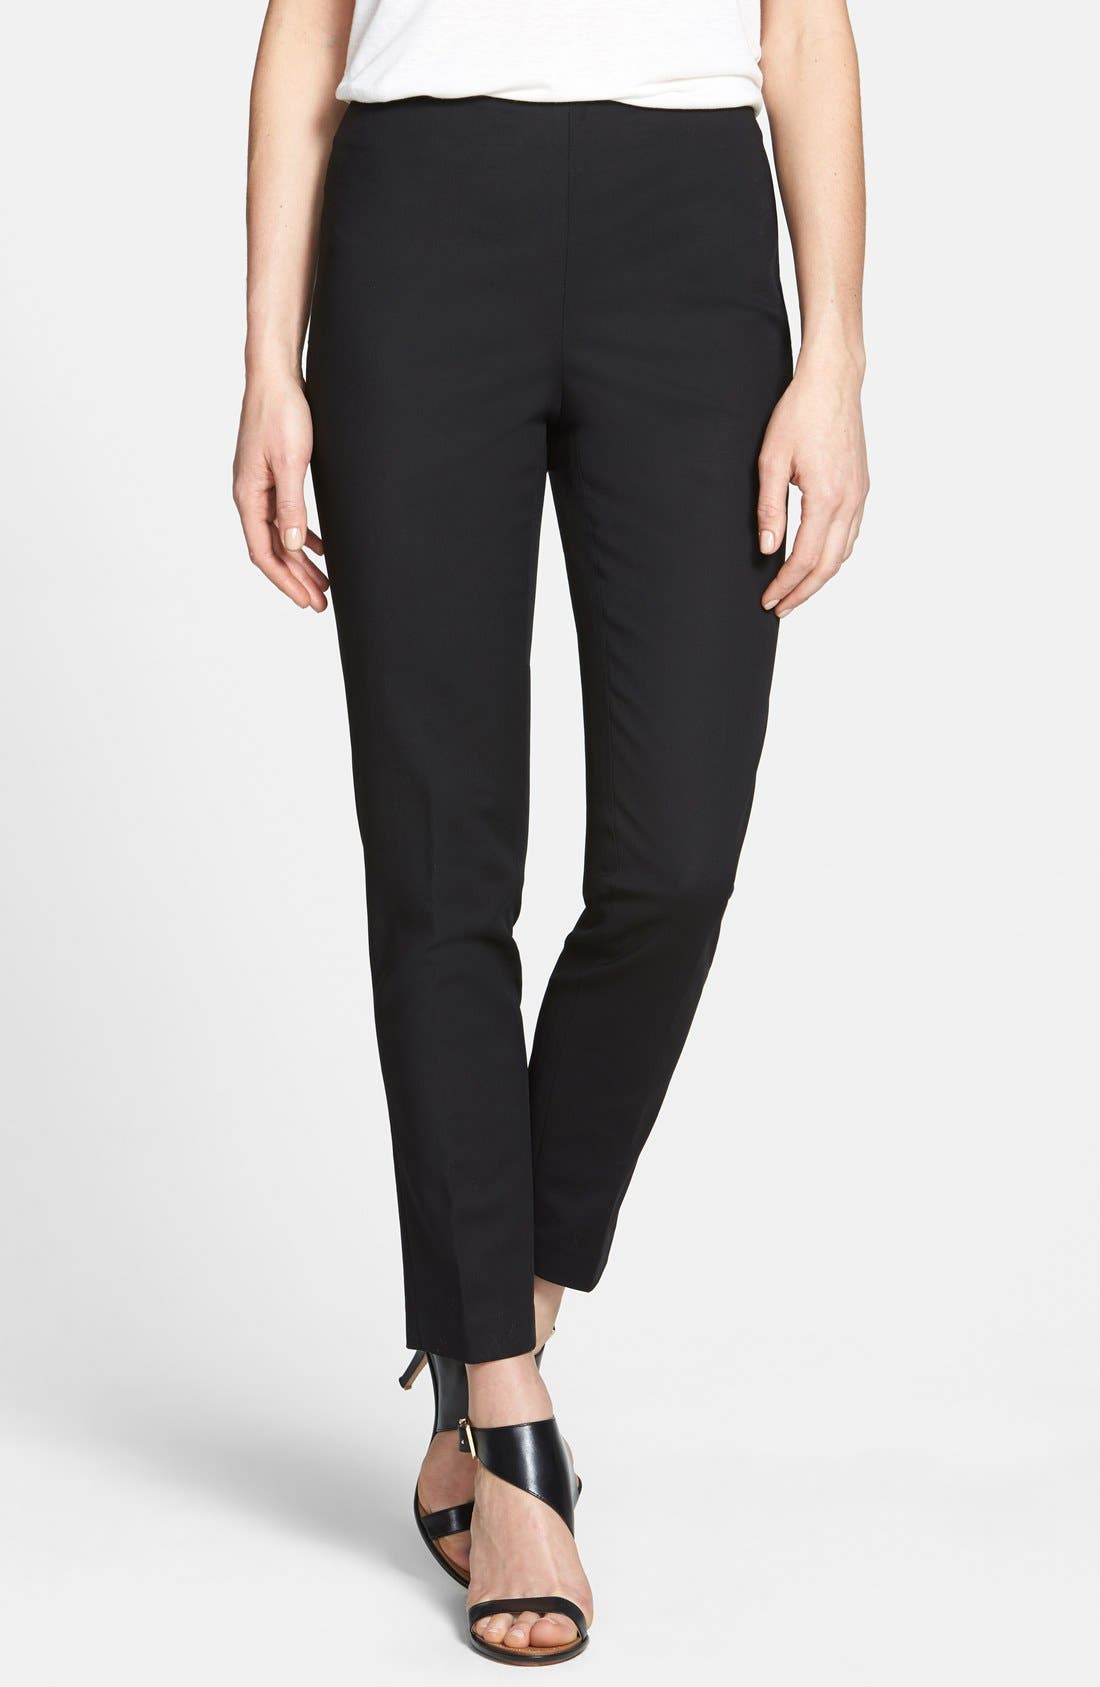 Alternate Image 1 Selected - Vince Camuto Side Zip Double Weave Stretch Cotton Pants (Regular & Petite)